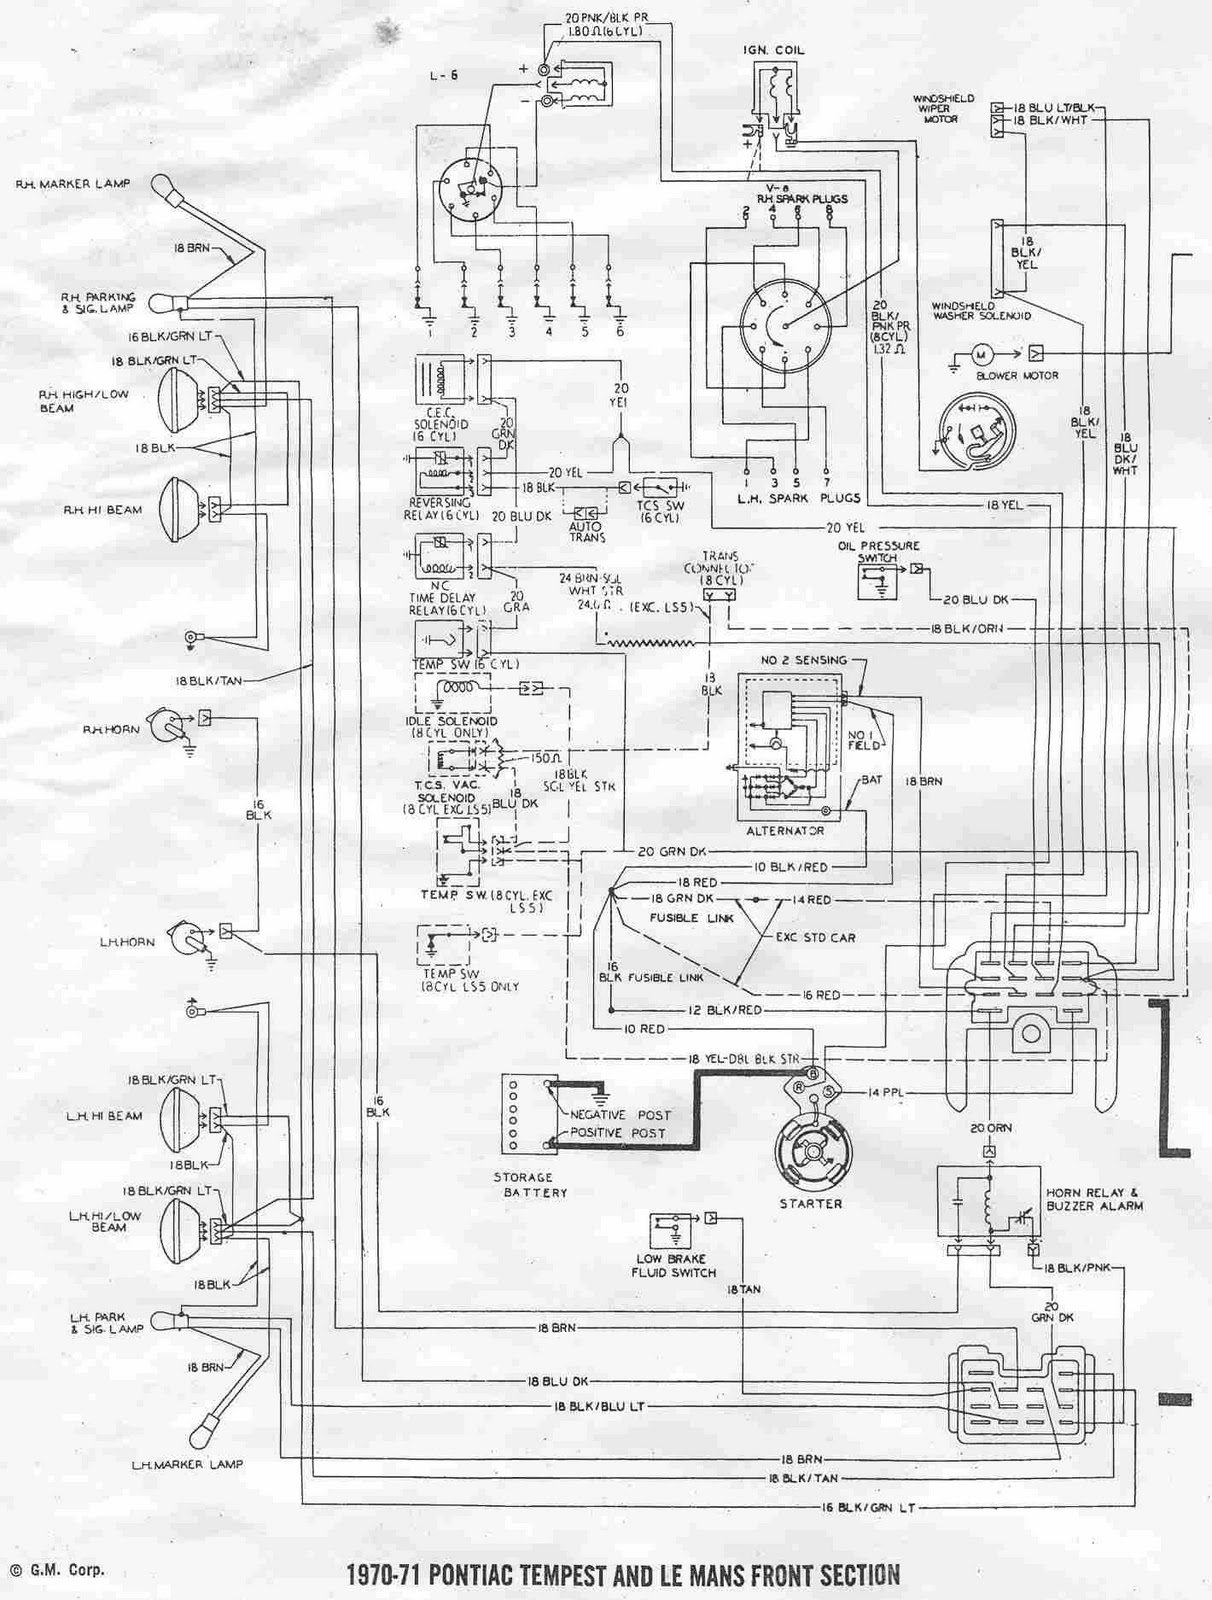 wiring diagram for a 1970 ford mustang the wiring diagram wiring diagram 1970 mustang wiring wiring diagrams for car wiring diagram